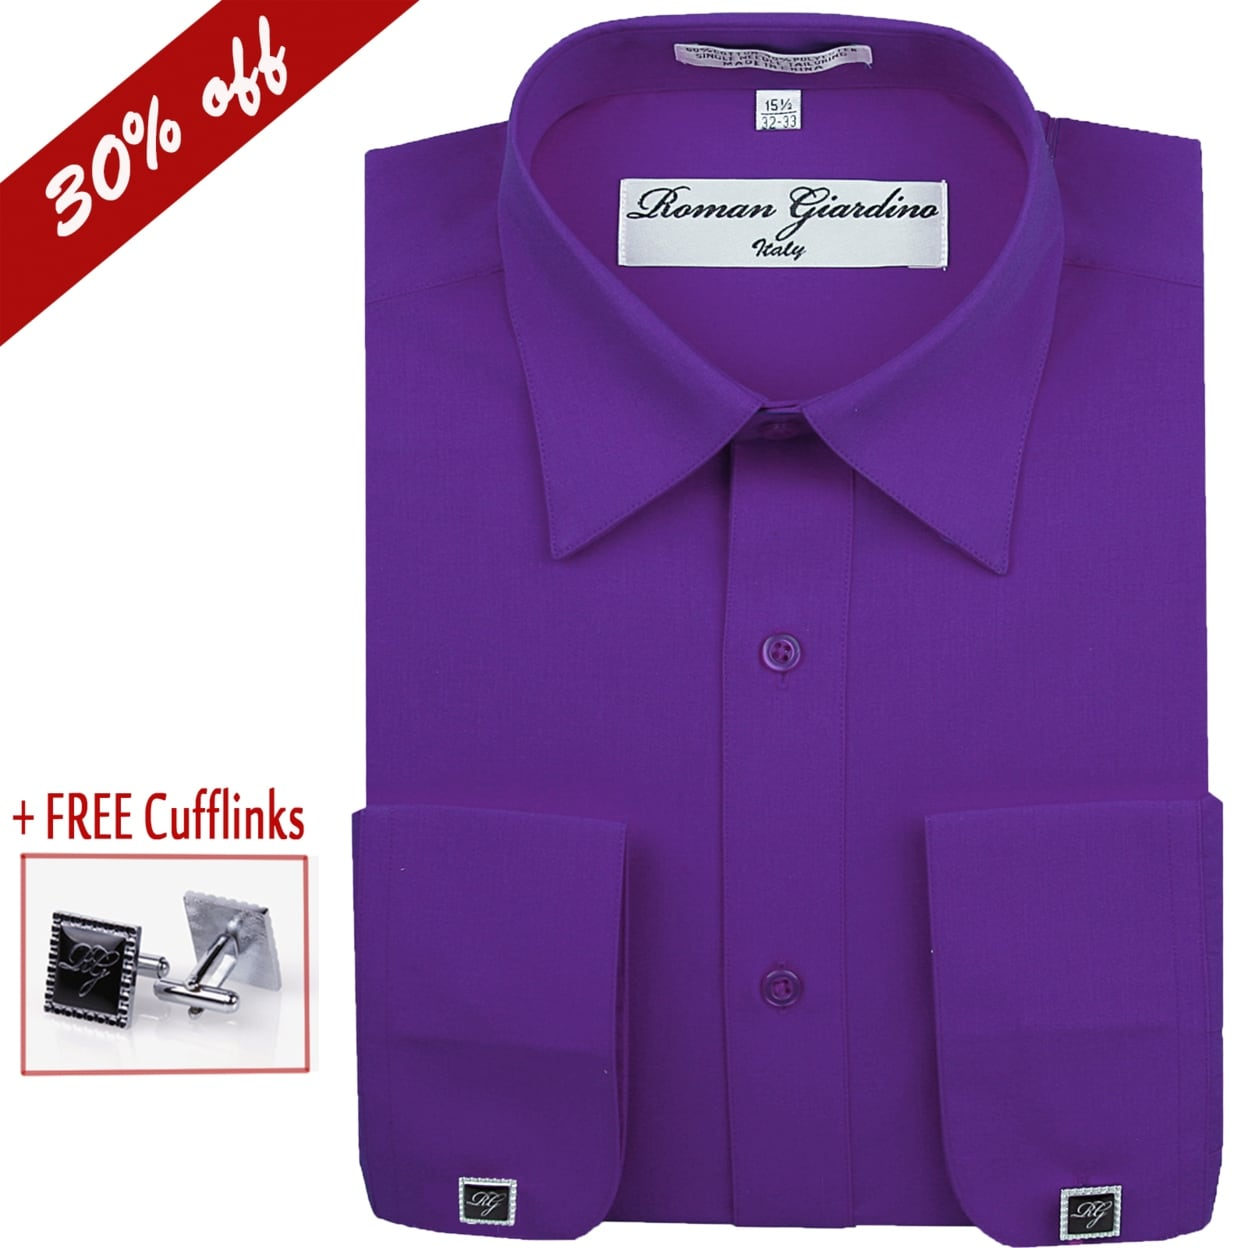 Roman Giardino Men S Dress Shirt Long Sleeve Convertible Cuffs The Italian Collar Cotton With Free Cuff Links Sugar Plum Overstock 23176389